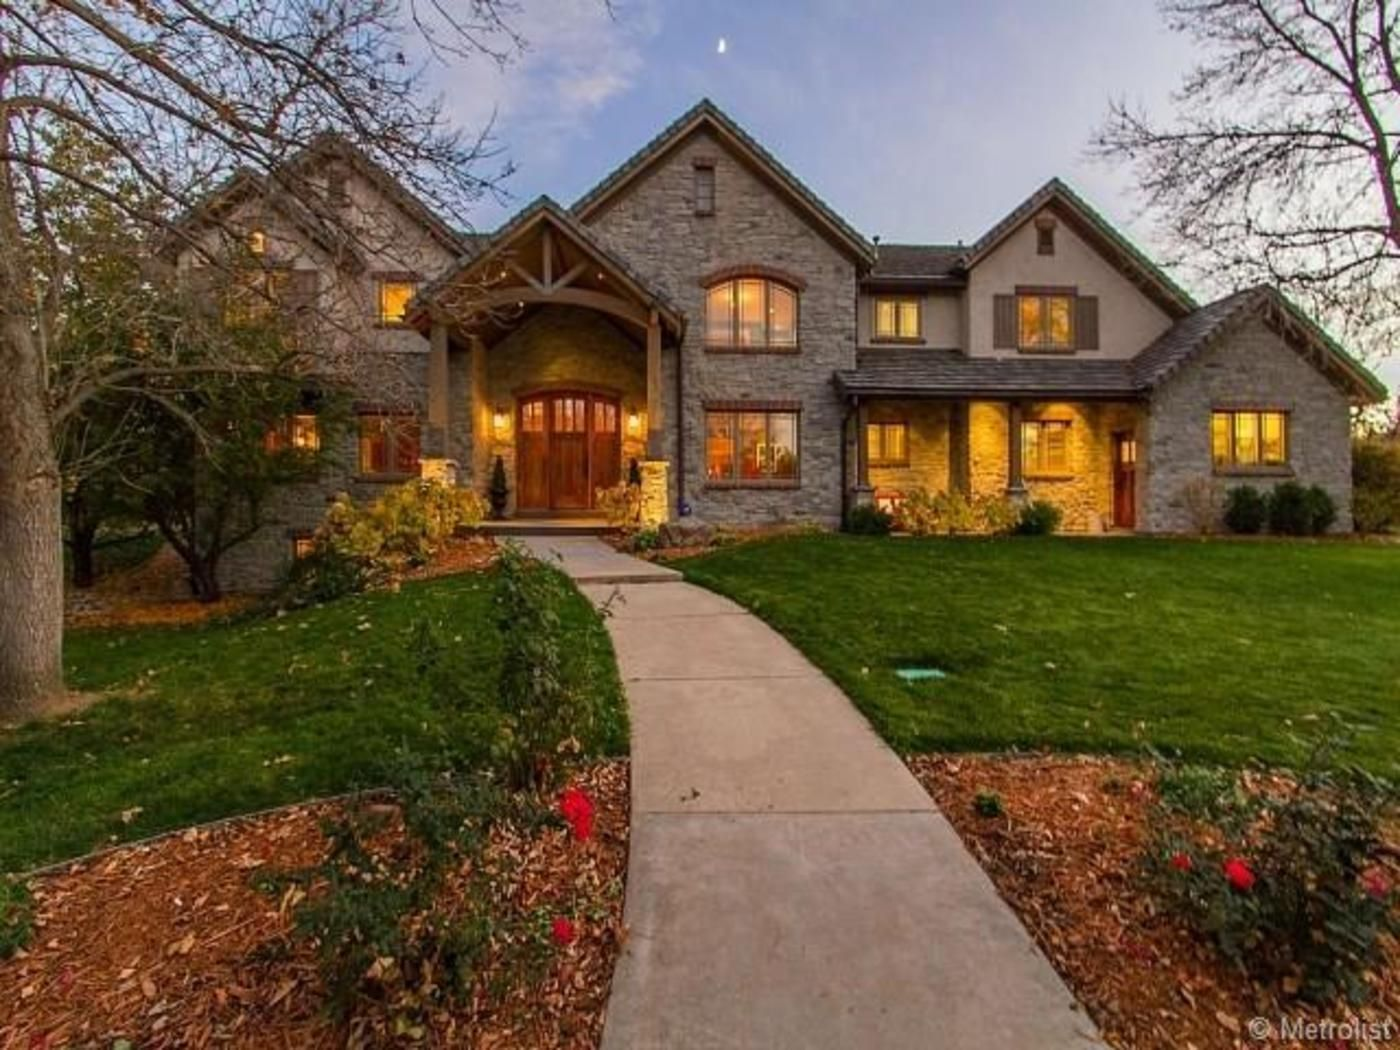 ncredibly beautiful whole house renovation down to the ... on Front Range Outdoor Living id=77828